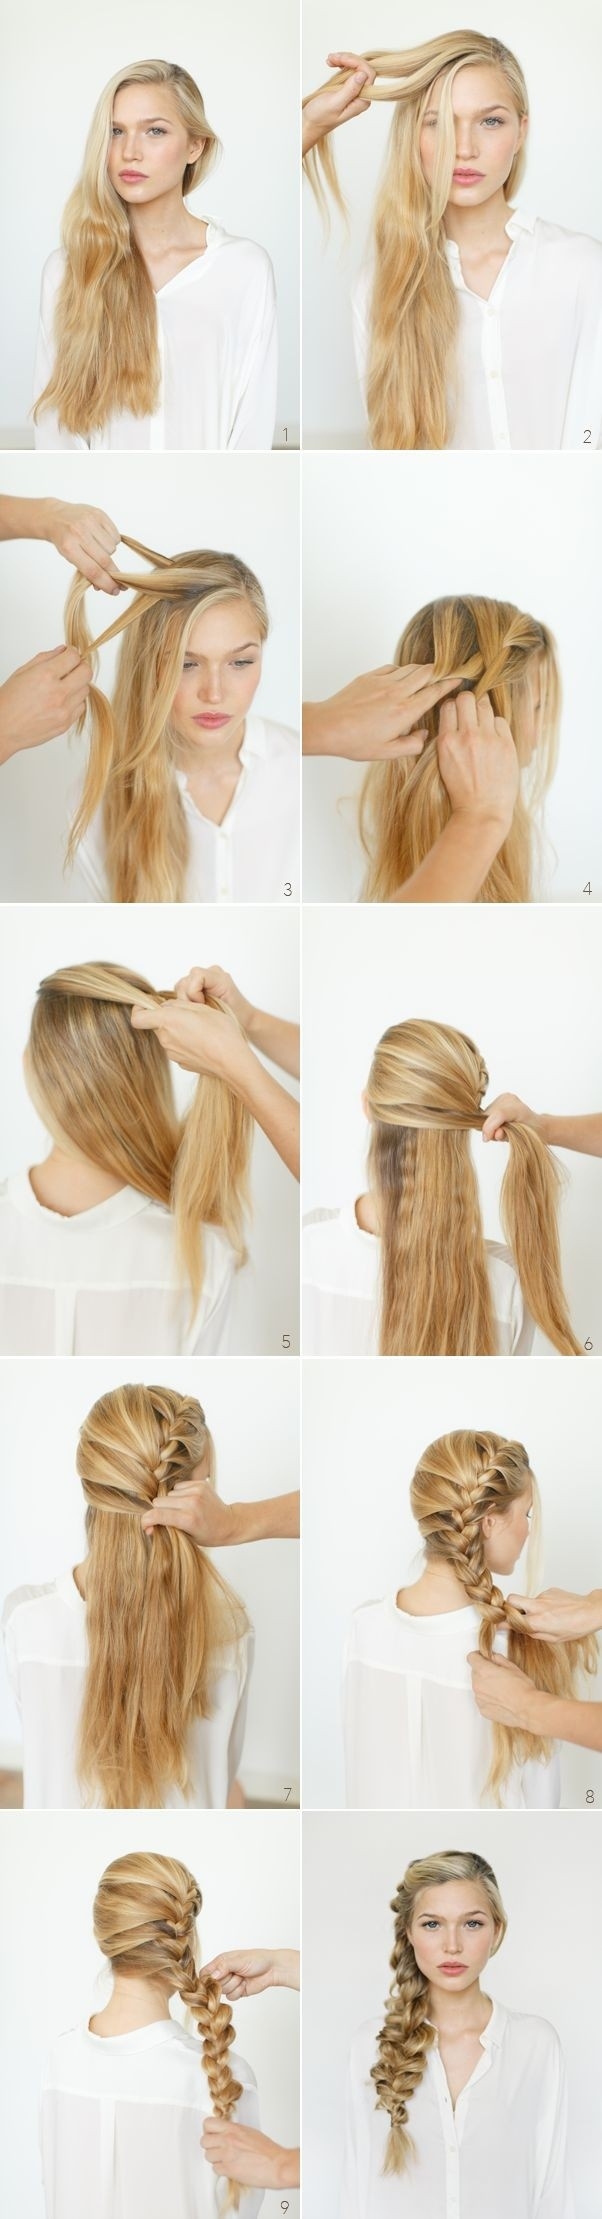 Messy Side Braided Ponytail Hairstyle Tutorial